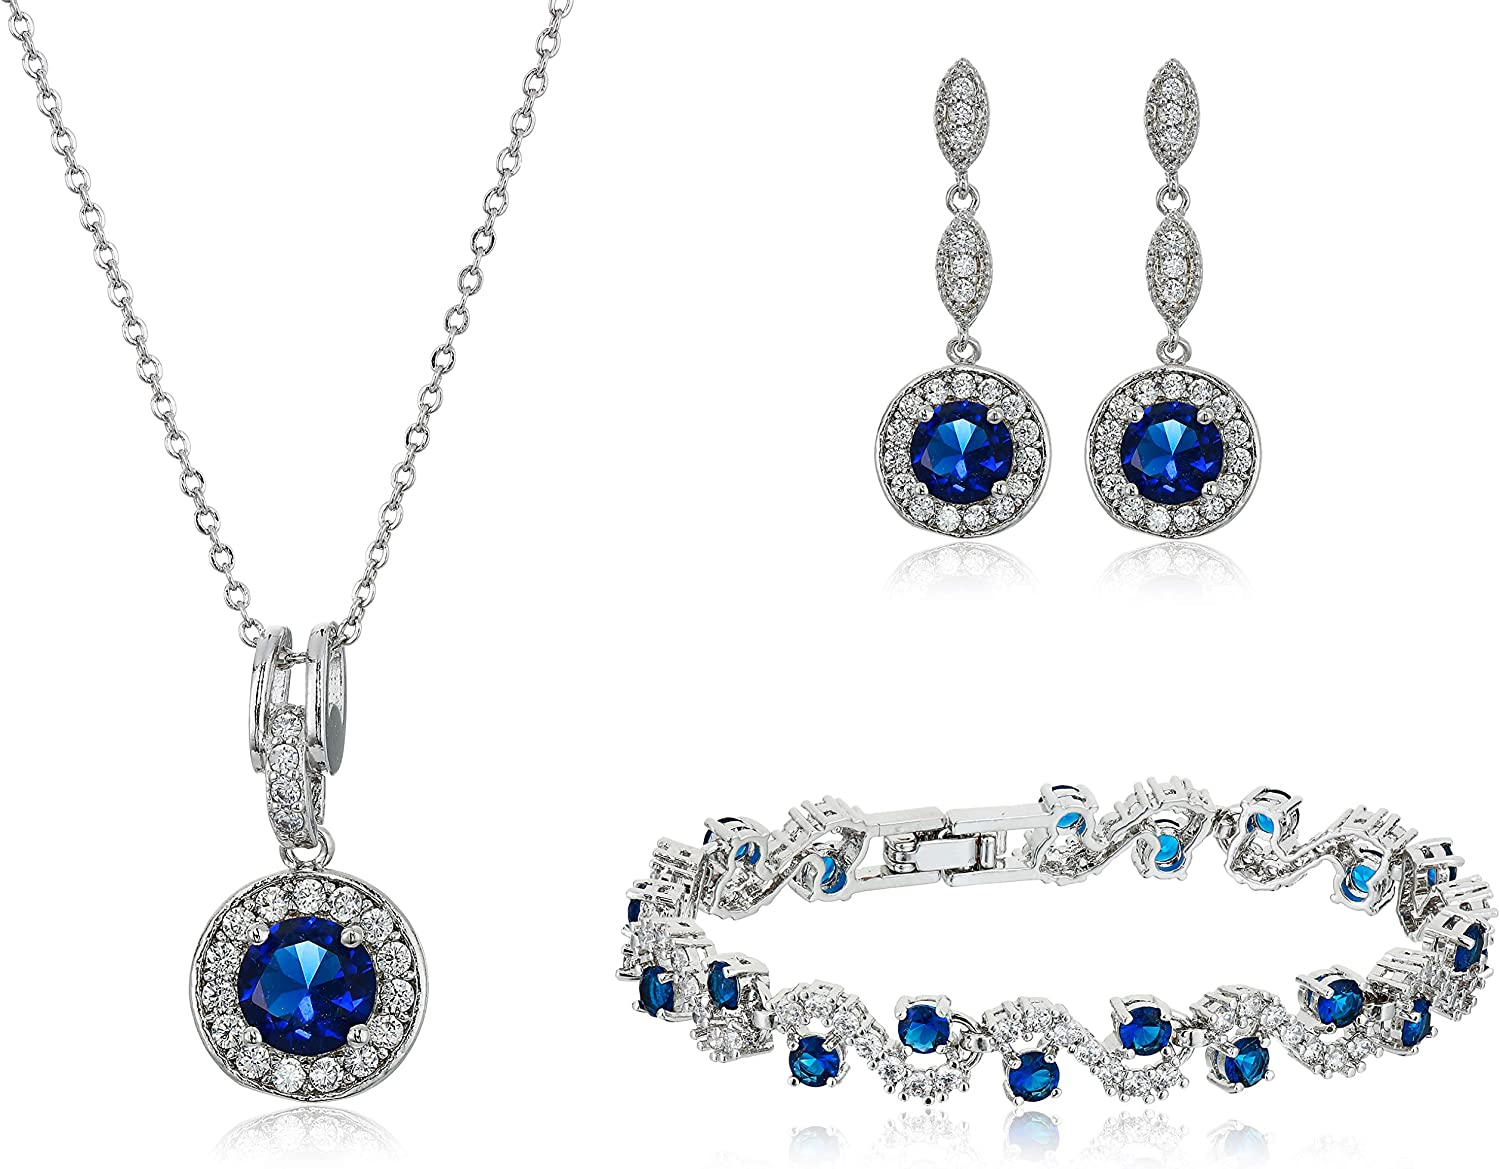 Crystalline Azuria Jewelry Sets for Women - Premium Wedding Jewelry Sets - Bridal Jewelry Set with Necklace and Earring for Bride - Cubic Zirconia Bridesmaid Jewelry - Fashion Prom Costume Jewelry